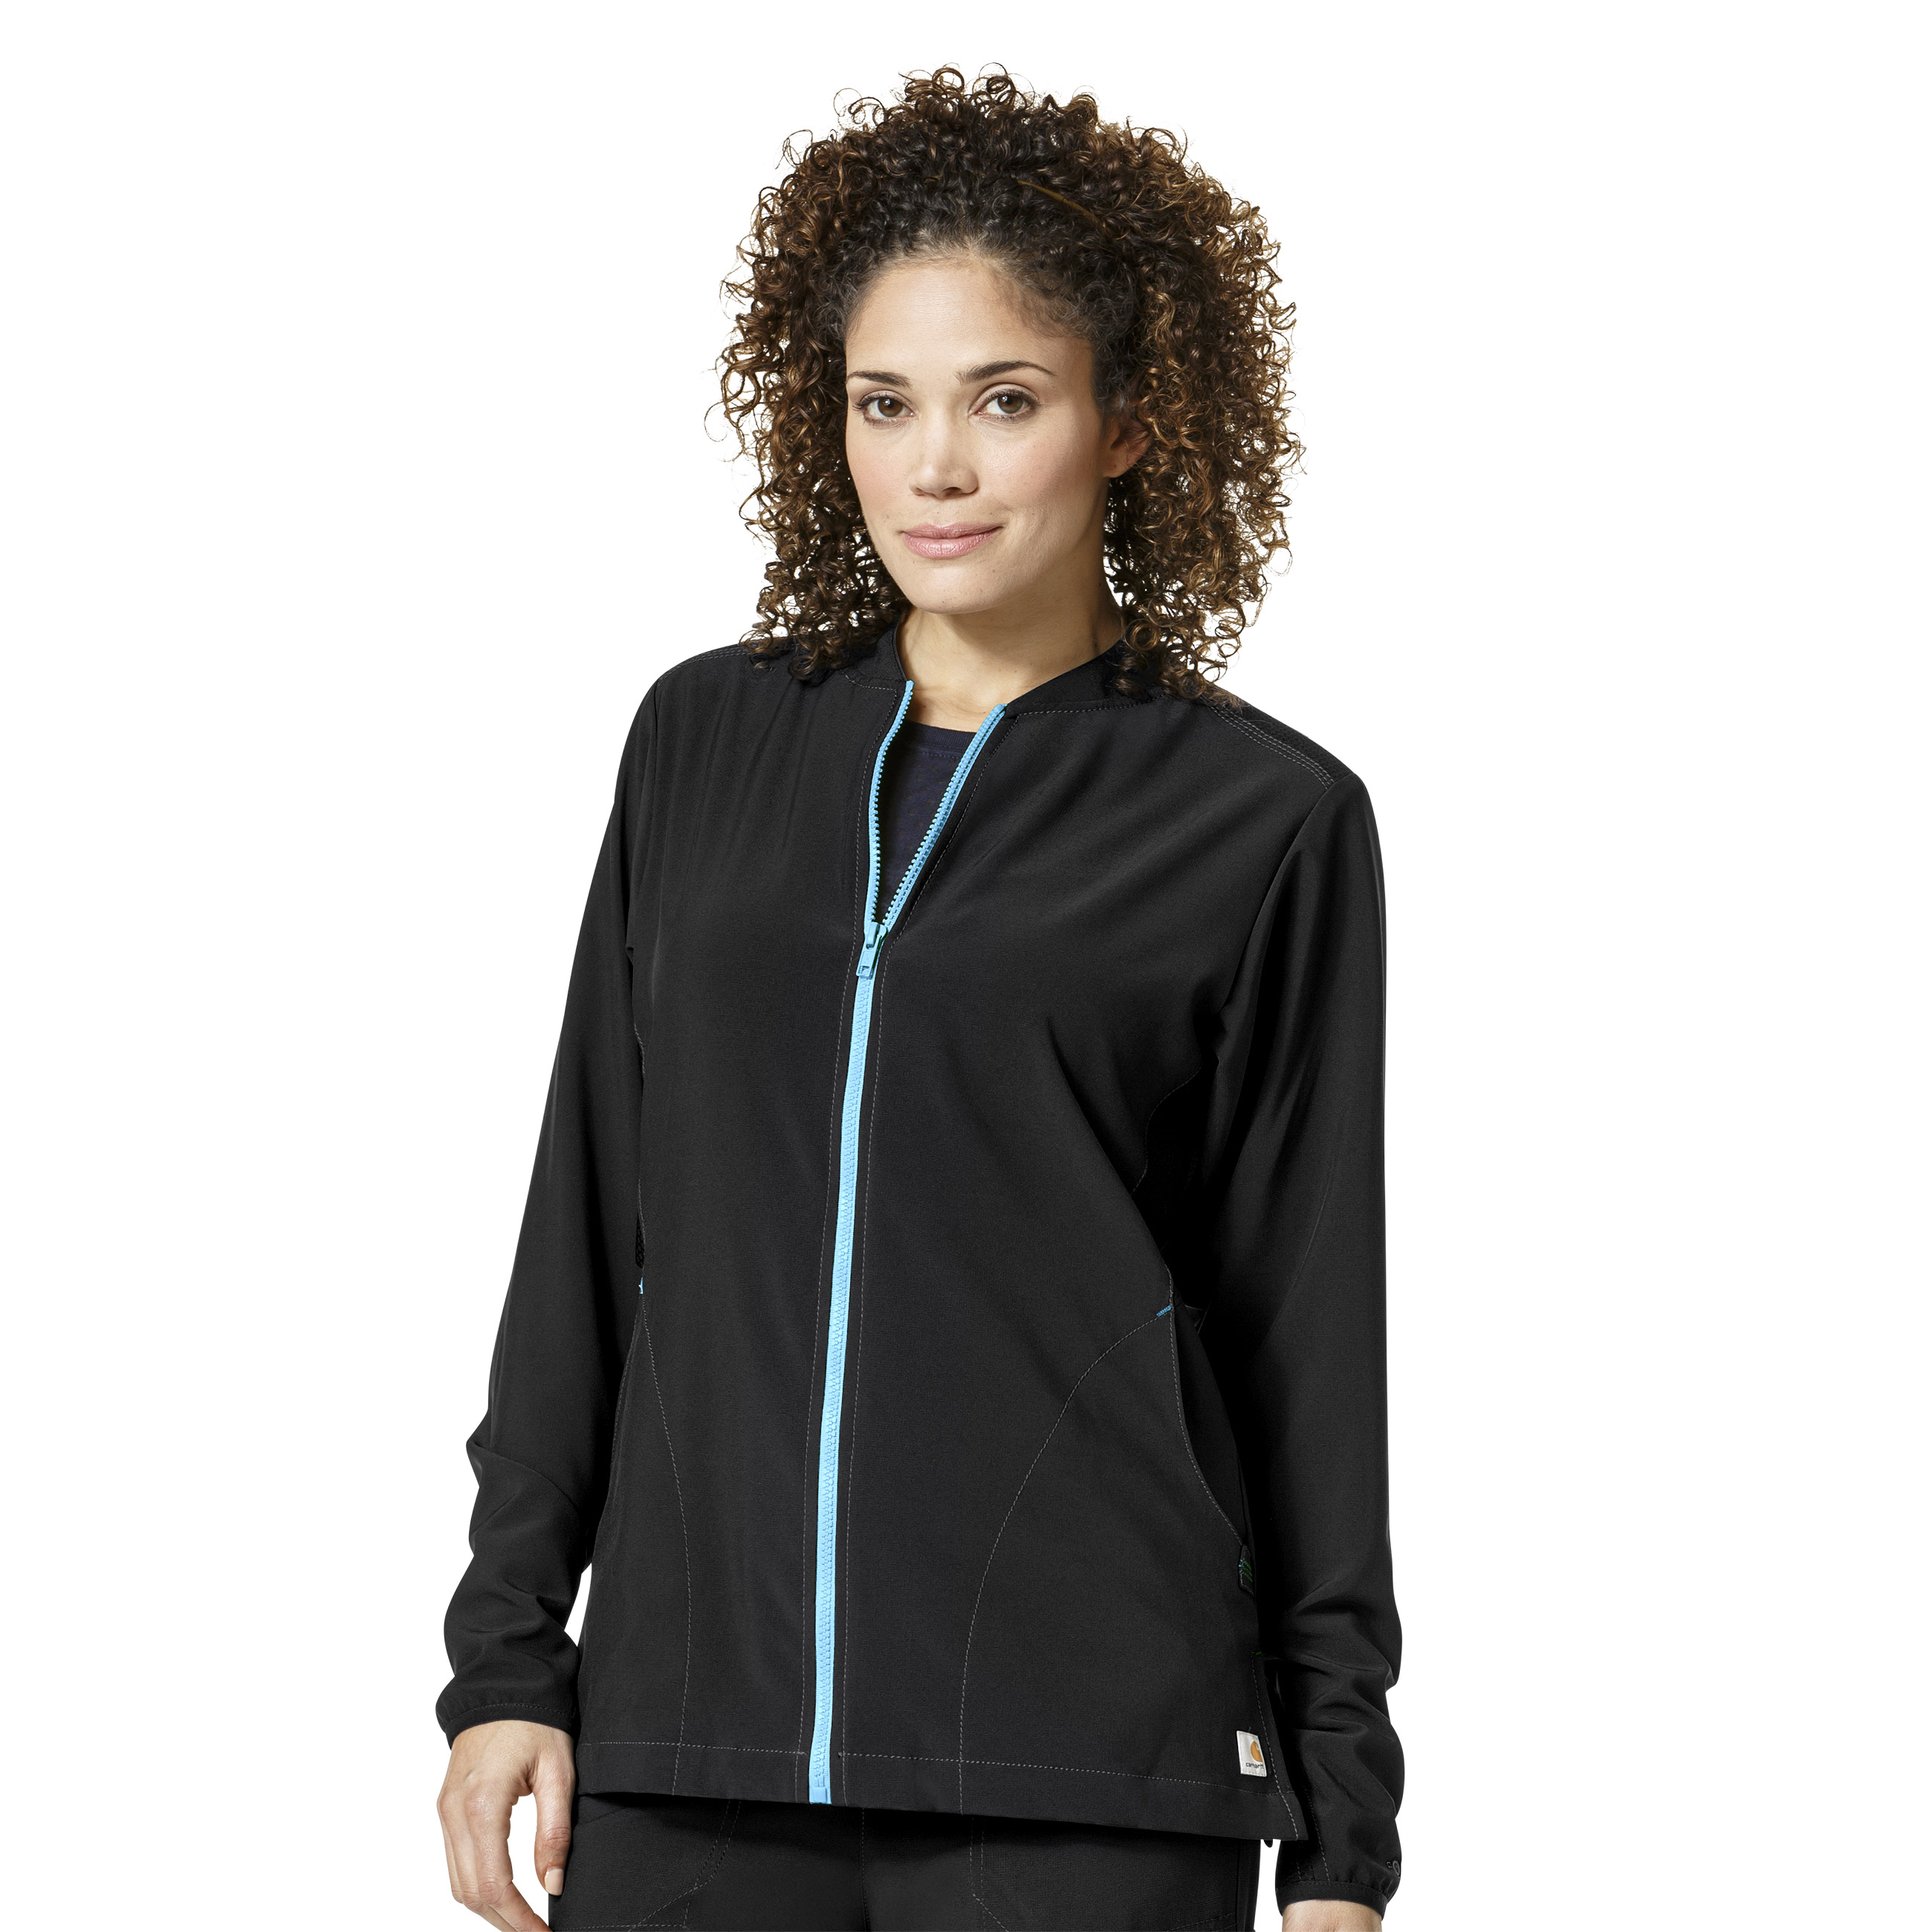 Warmup Jacket, CAR-C82310